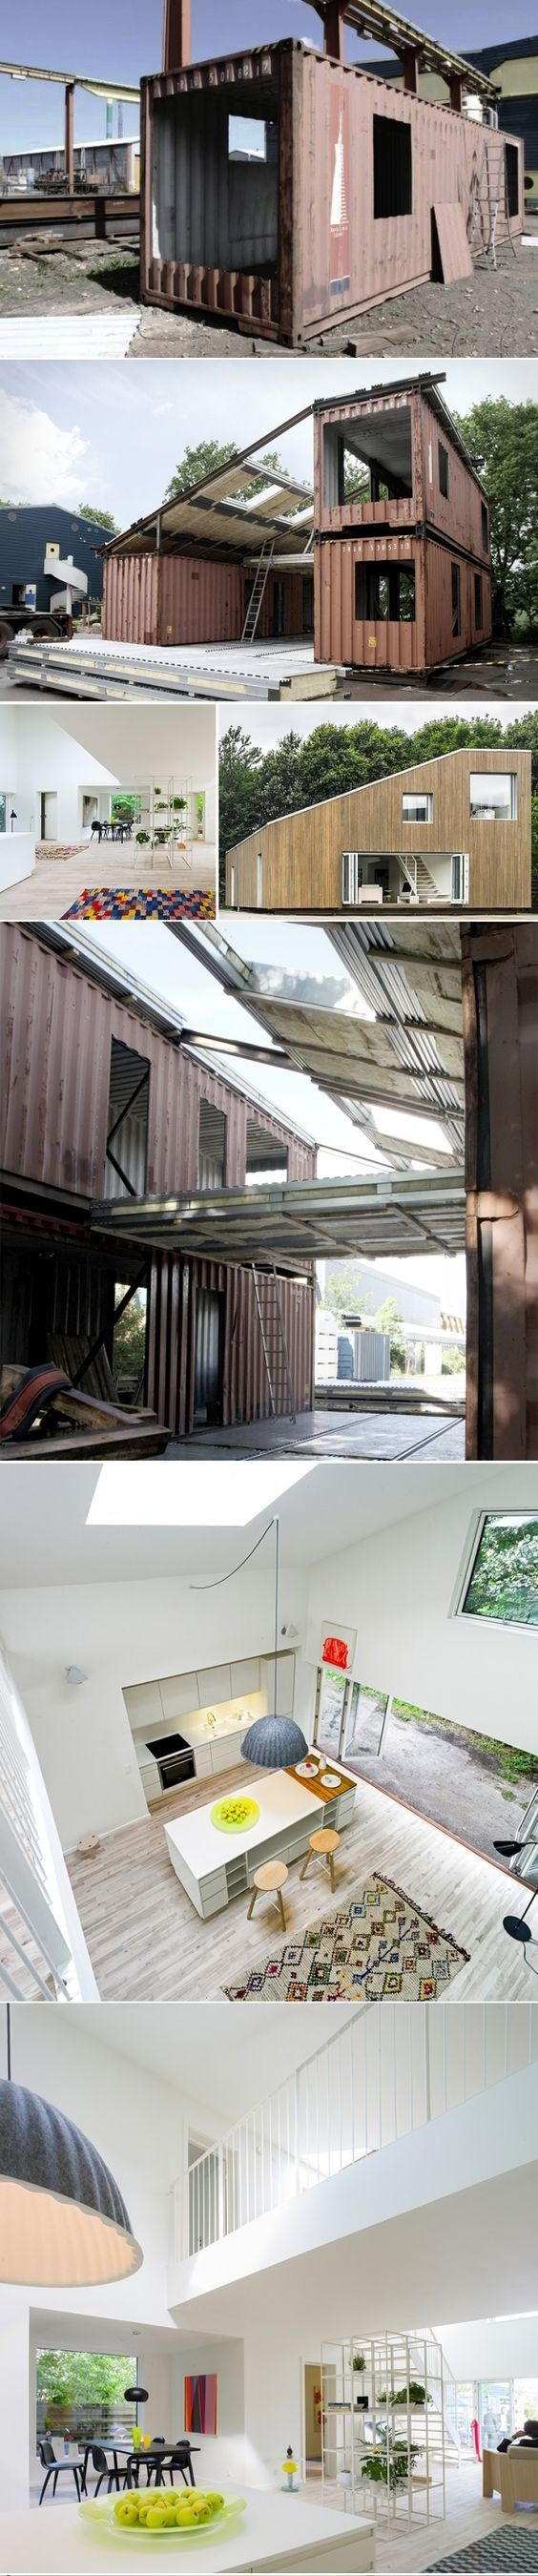 Upcycled Shipping Container House ♥ ♥